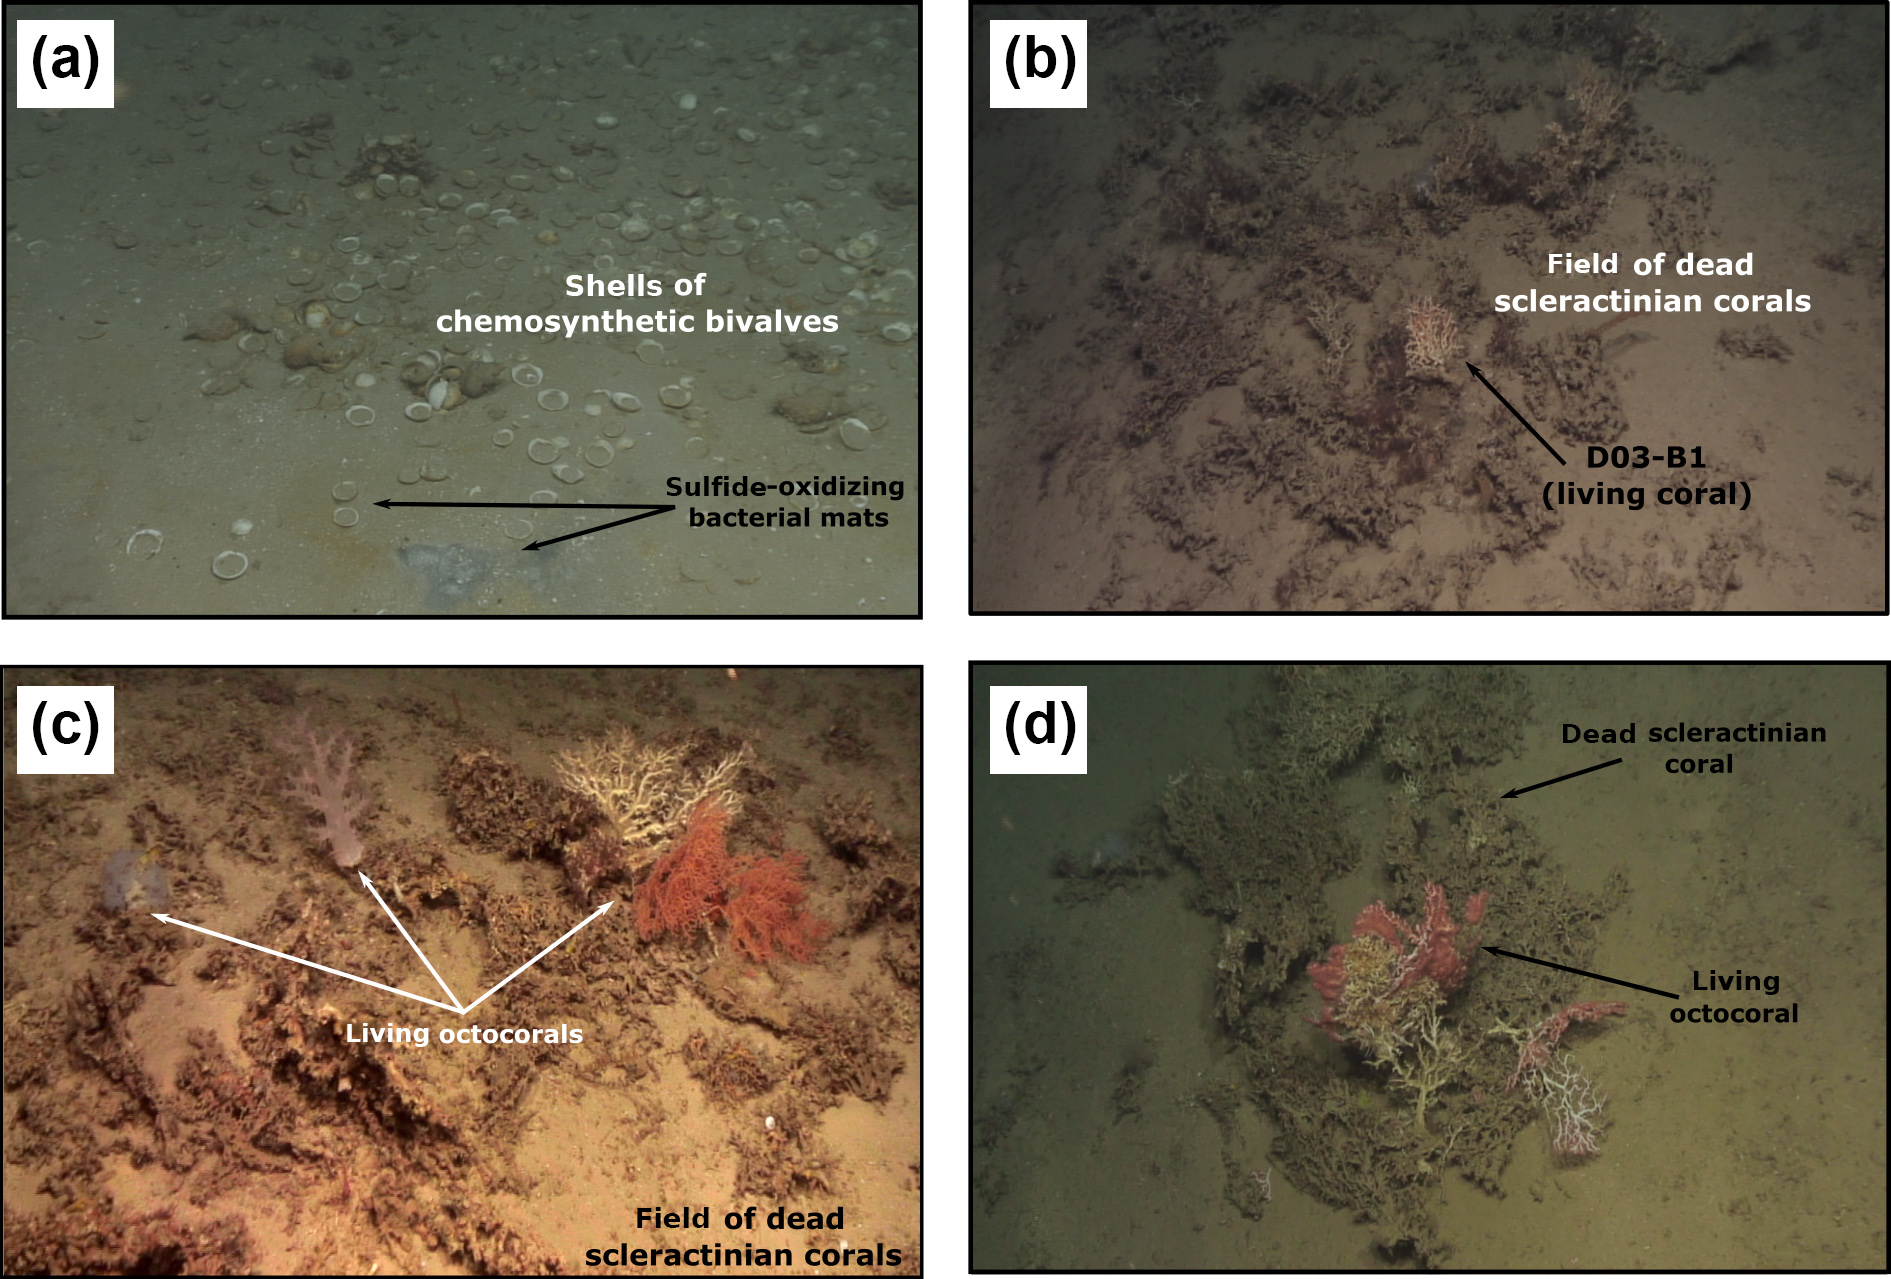 BG - Cold-water corals and hydrocarbon-rich seepage in Pompeia